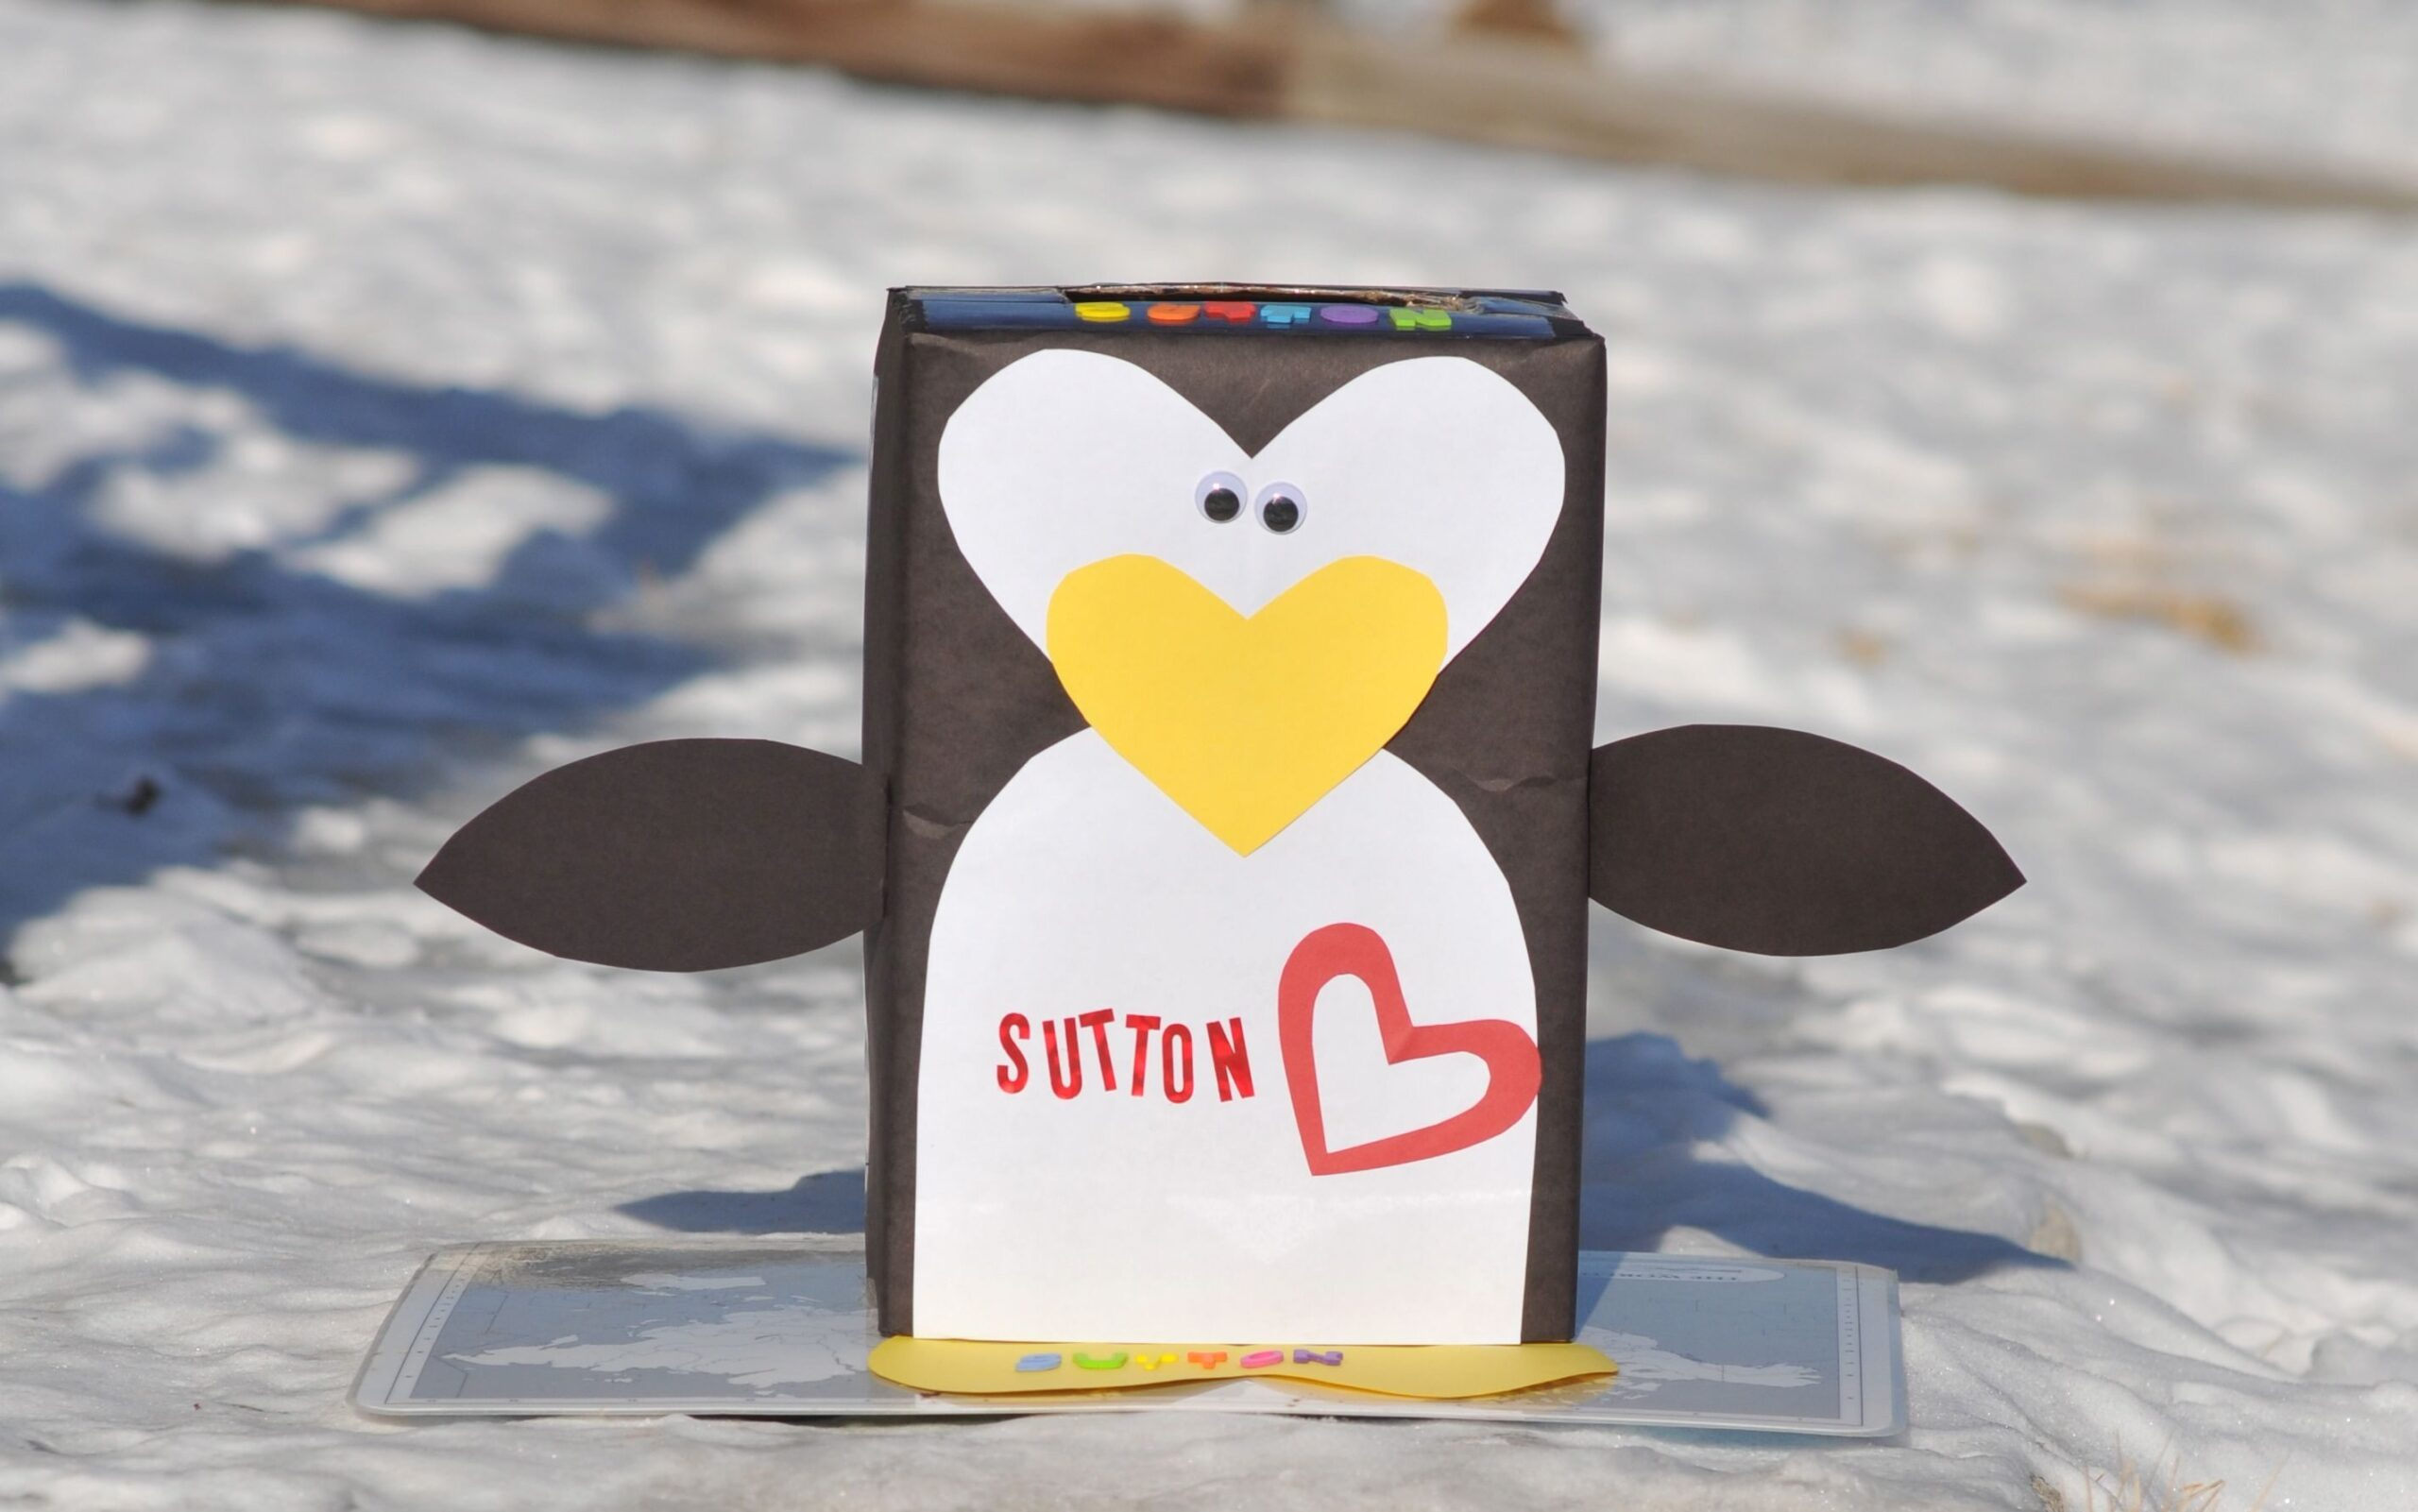 Adorable penguin with a yellow heart nose valentine box idea | The Dating Divas